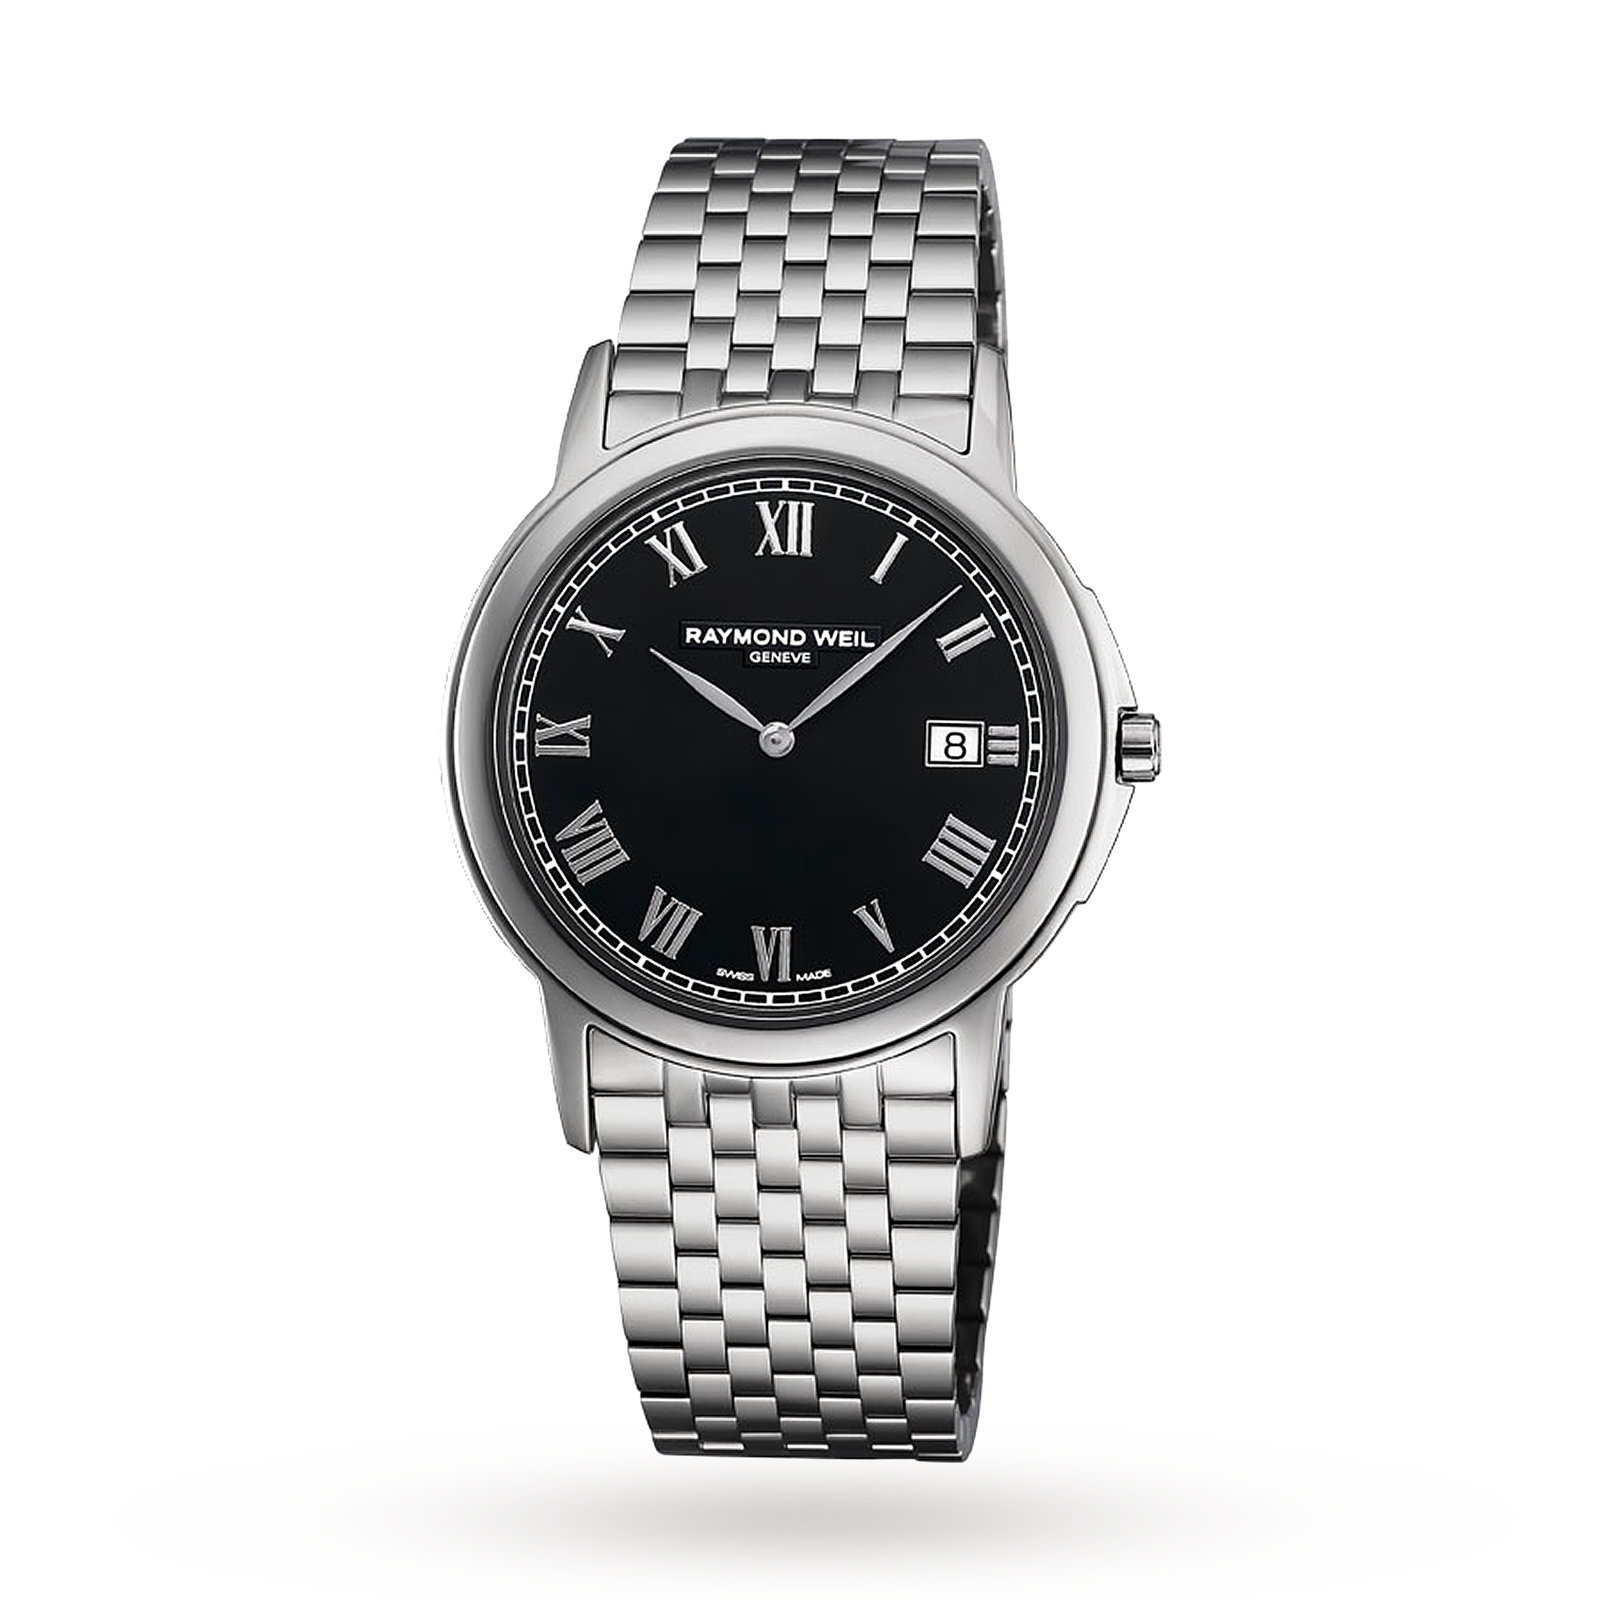 Raymond Weil Men's Tradition Watch